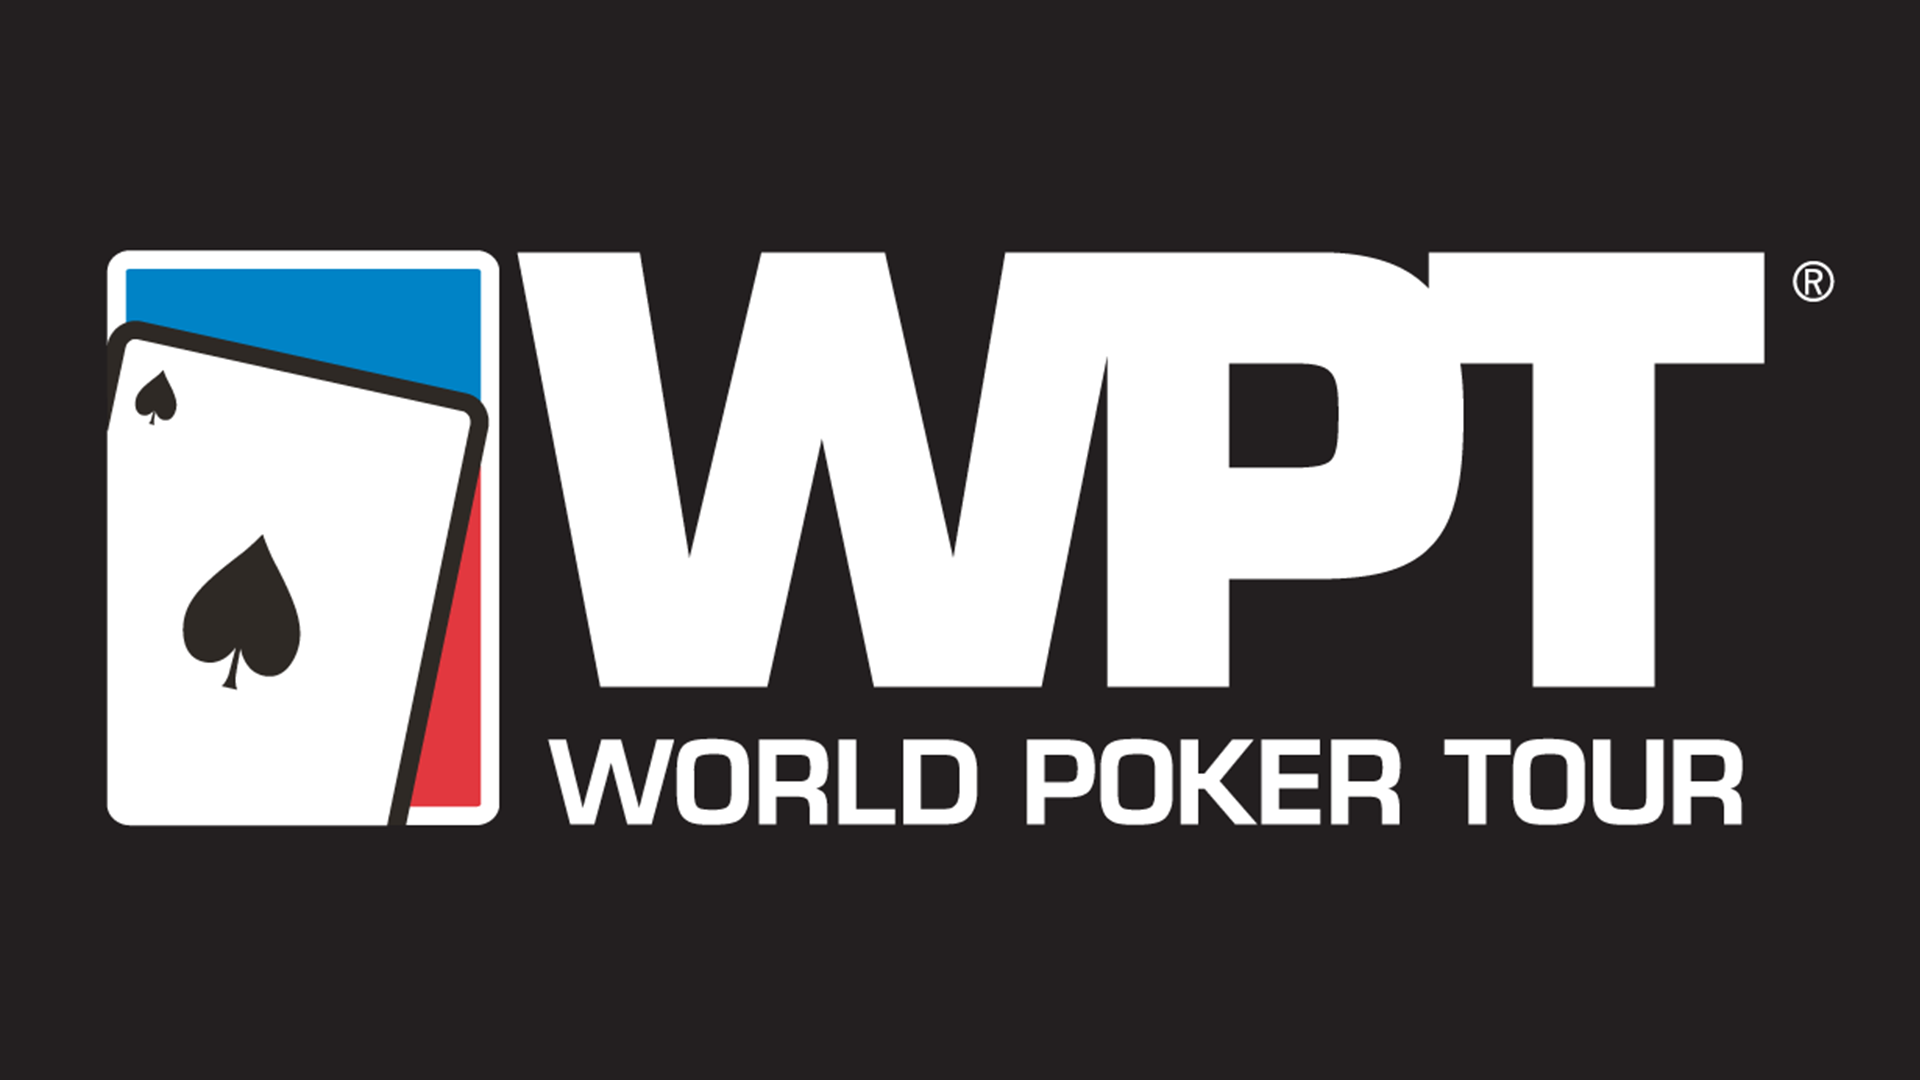 Amazoncom World Poker Tour Appstore for Android 1920x1080